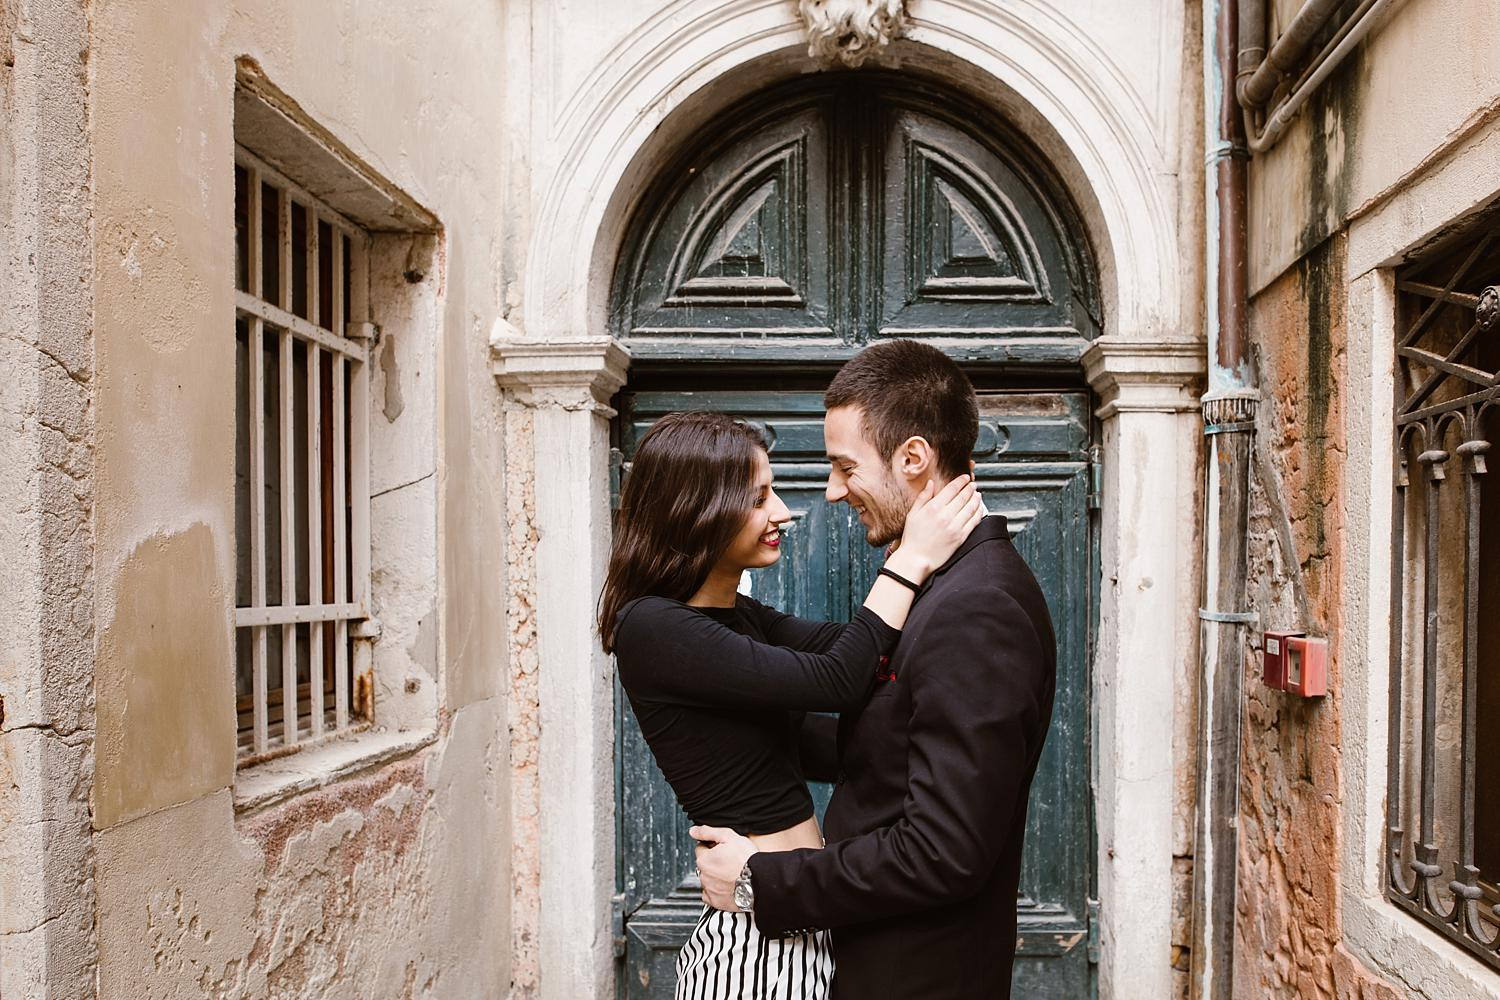 GL 15 - Giulia & Leonardo - An Intimate Shooting in Venice